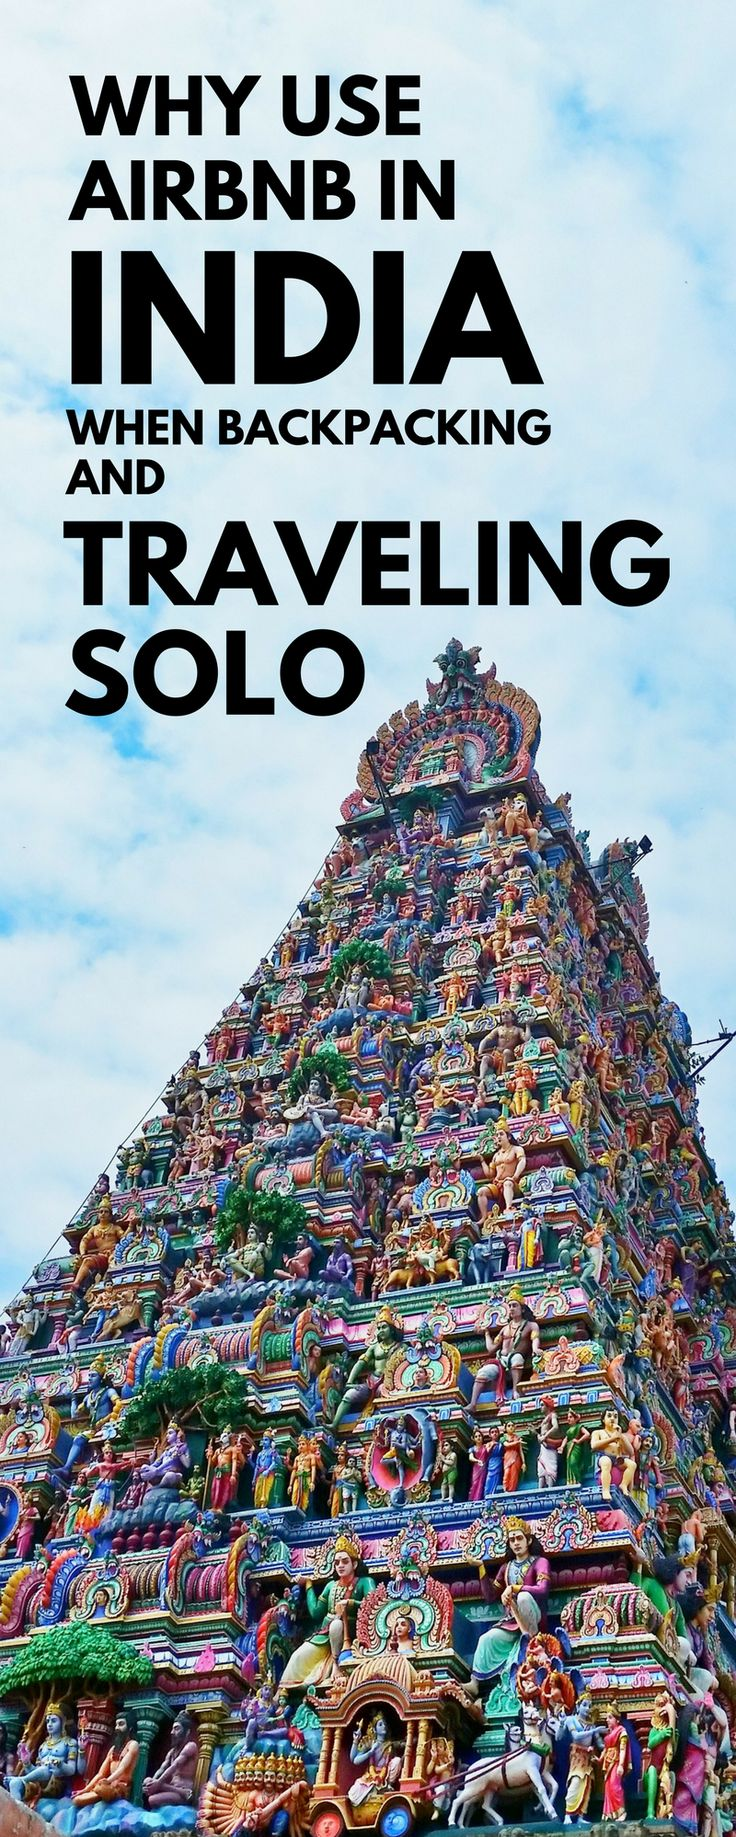 For travel tips in India for weeks backpacking Asia, book airbnb in India to learn Indian culture! Make it one of the things to do in India even if you travel cheap. Home-cooked food, can be better than guesthouse, budget hotel. Put it on checklist along with list of what to pack, what to wear in India. Ideas for international travel, world adventures, bucket list destinations! Trips to Mumbai, Delhi, Rajasthan, Jaipur, Amritsar, Kerala, North India, South India. #india #indiatips…